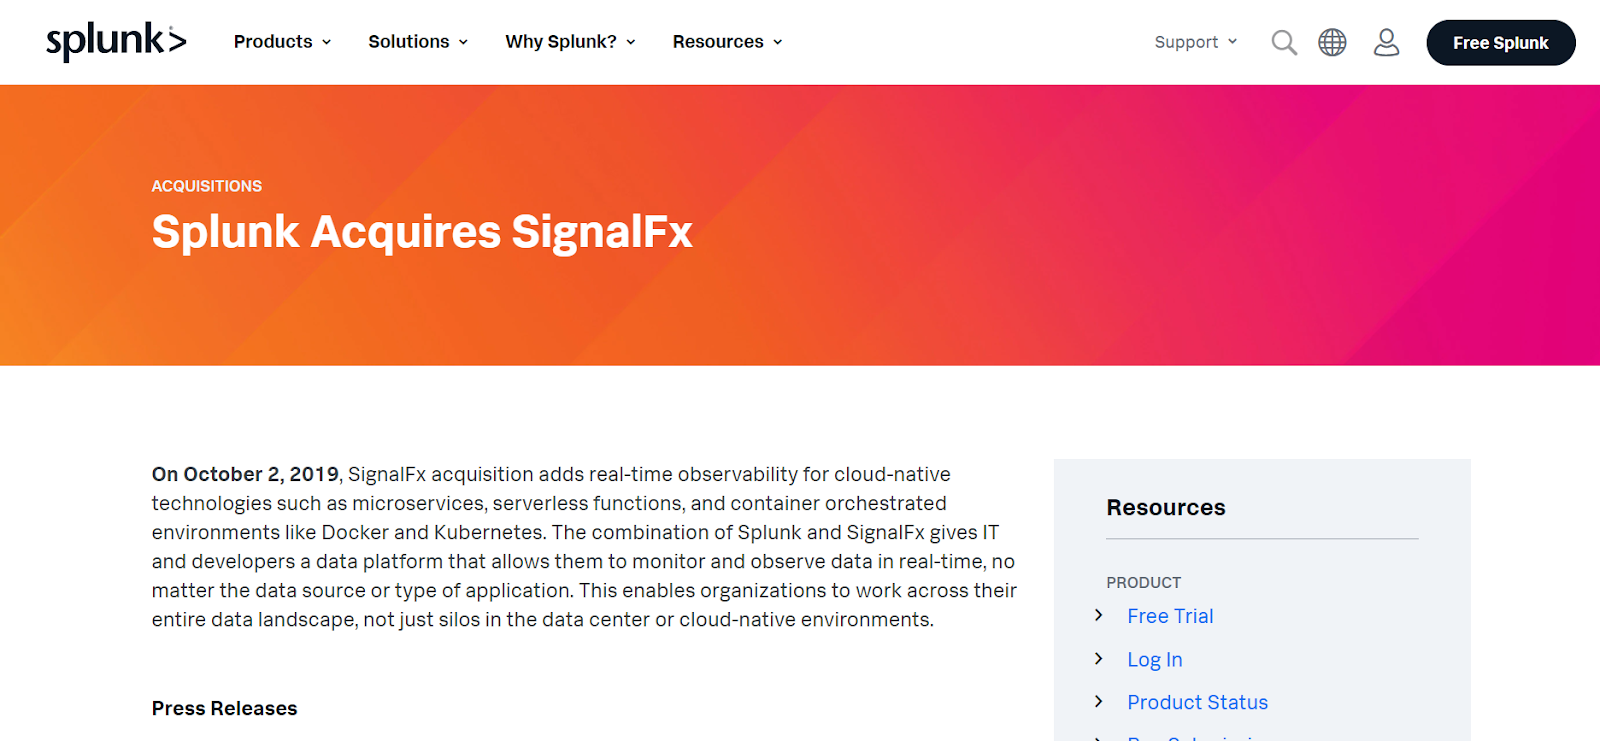 SignalFx is one of the best visionaries in Application Performance Monitoring Tools in the market